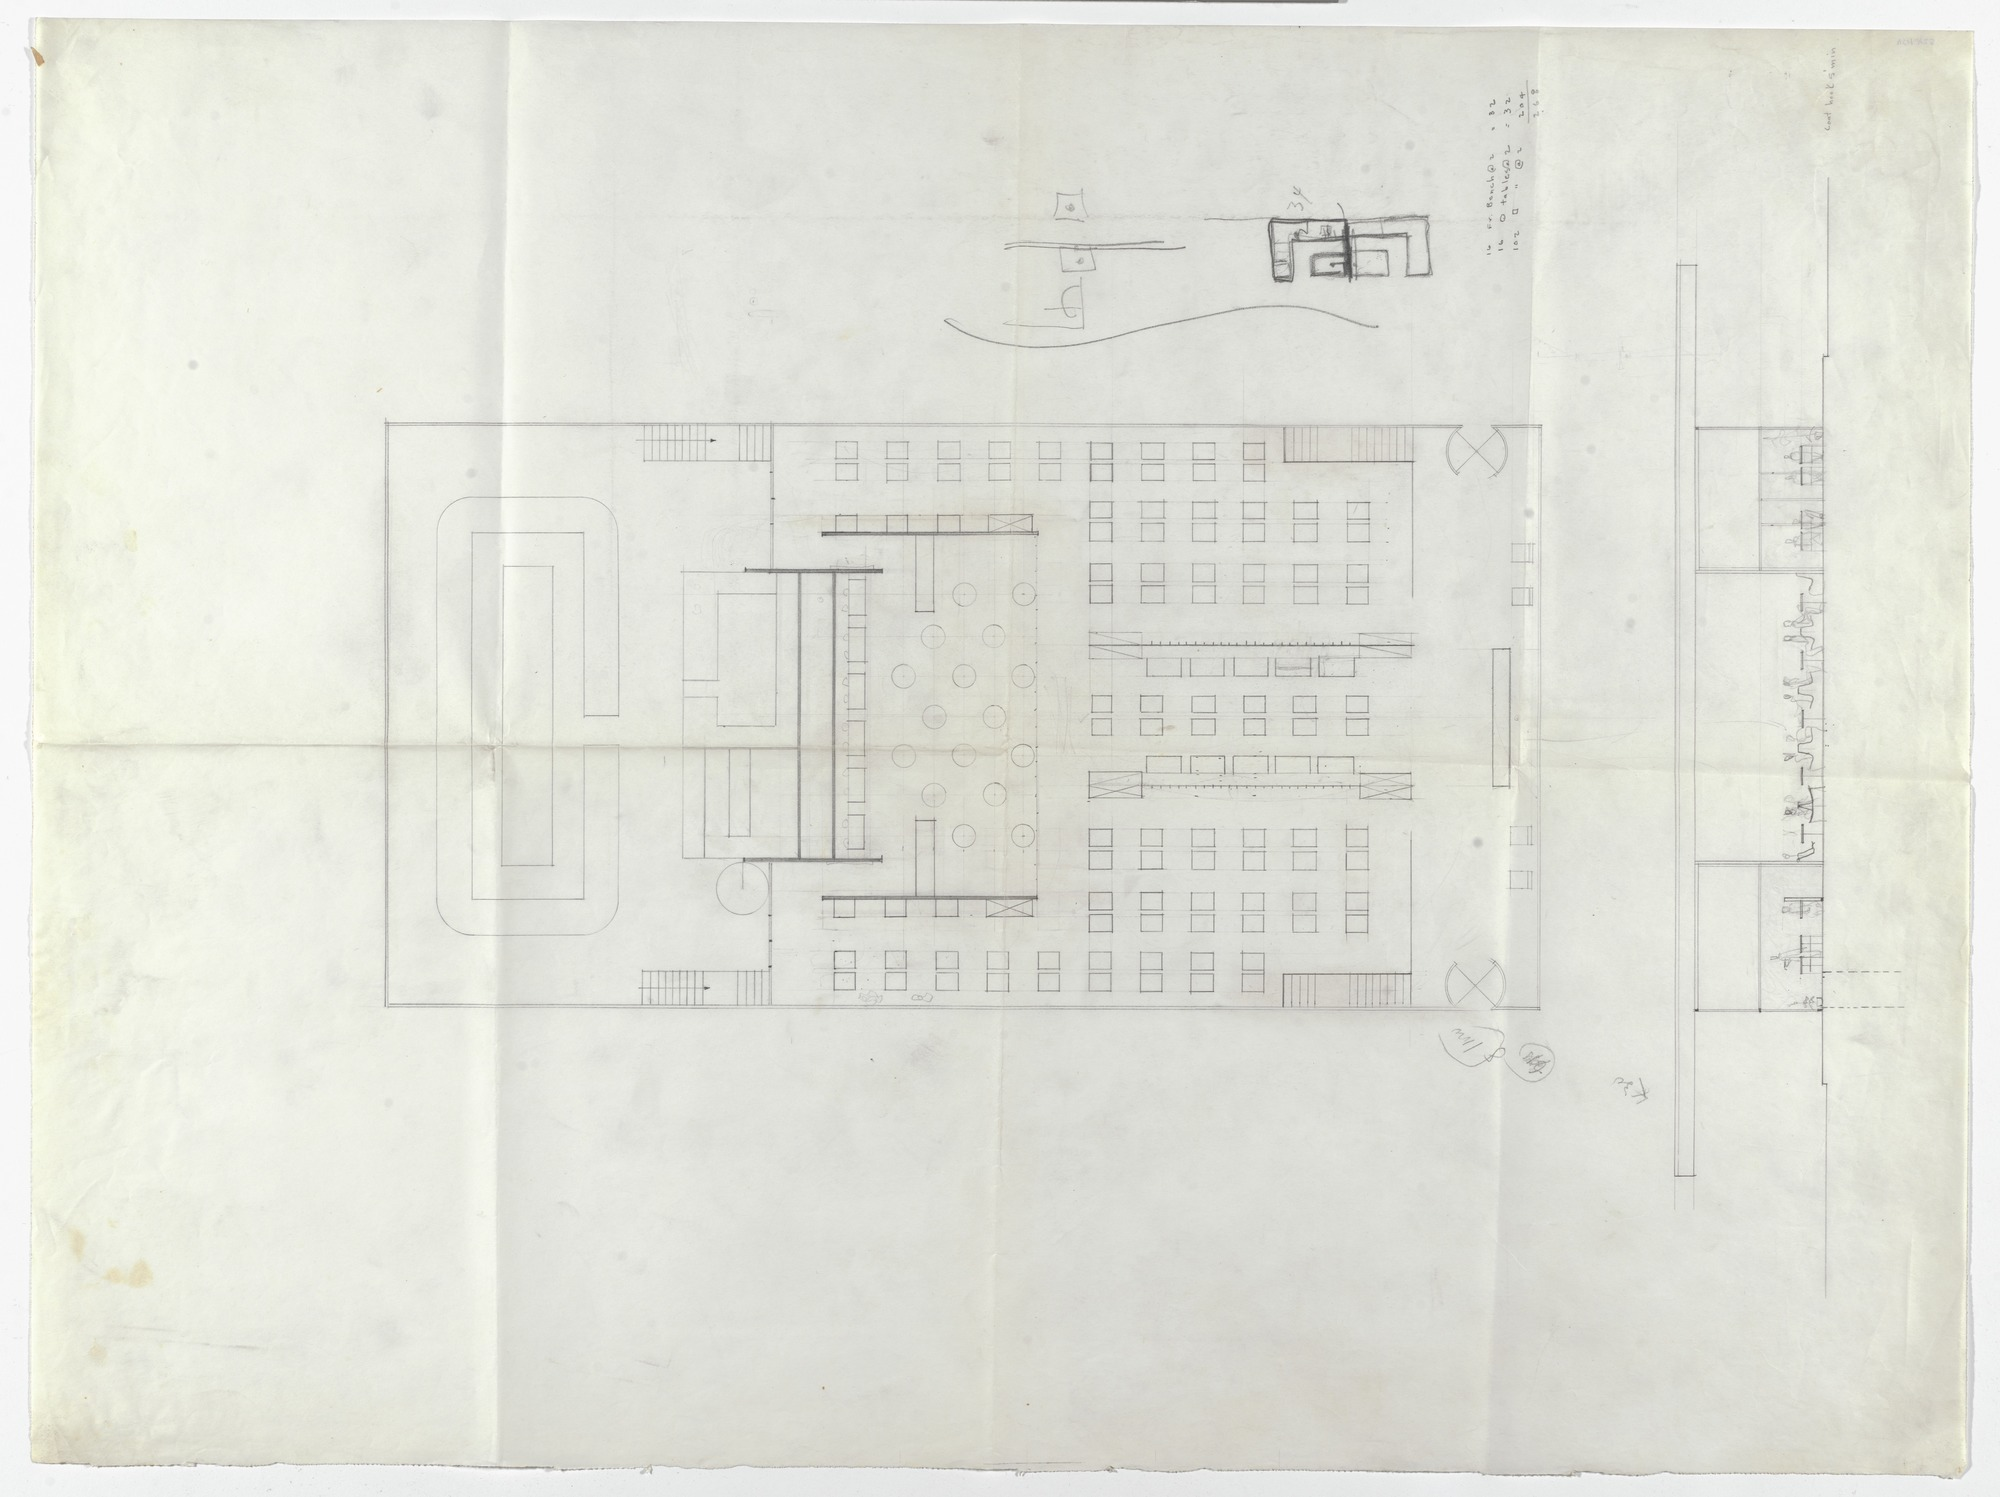 "Floor plan and elevation of a drive-in: the Cantor ""HIWAY"" restaurant, designed by Mies Van der Rohe, pencil on tracing paper, circa 1945-1950. Image: The Museum of Modern Art"